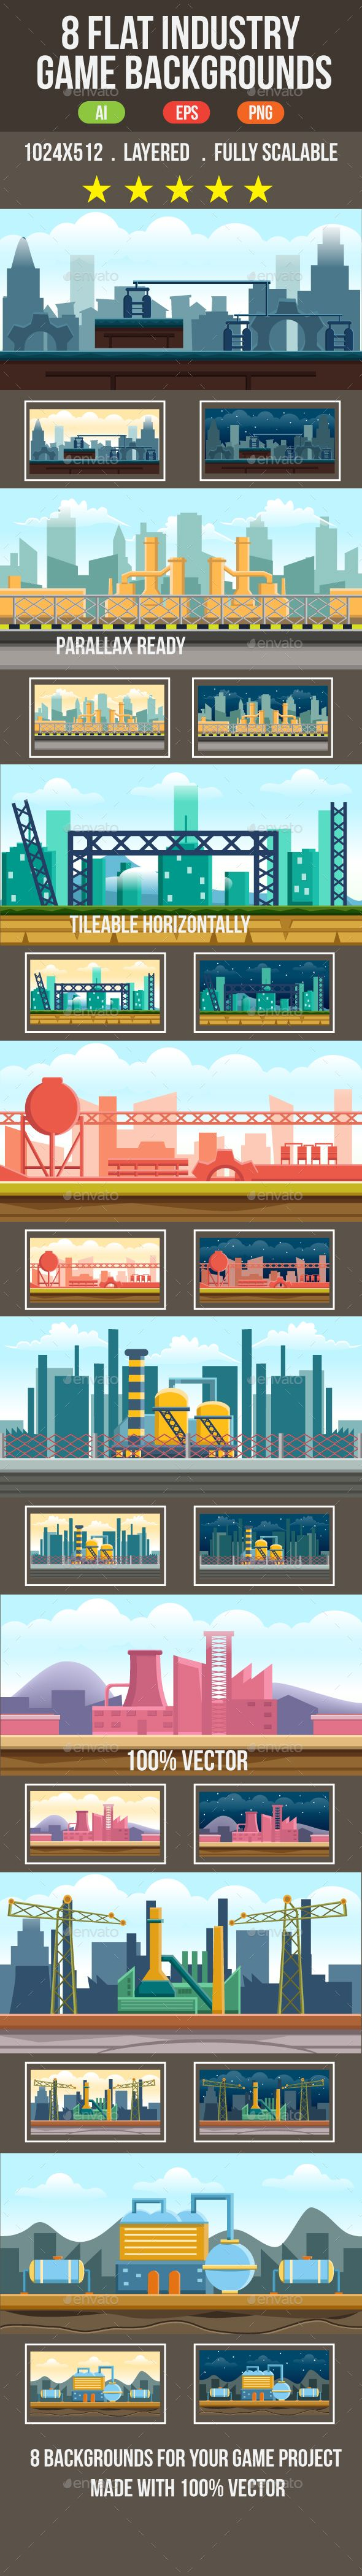 8 Flat Industrial Game Backgrounds - Backgrounds Game Assets